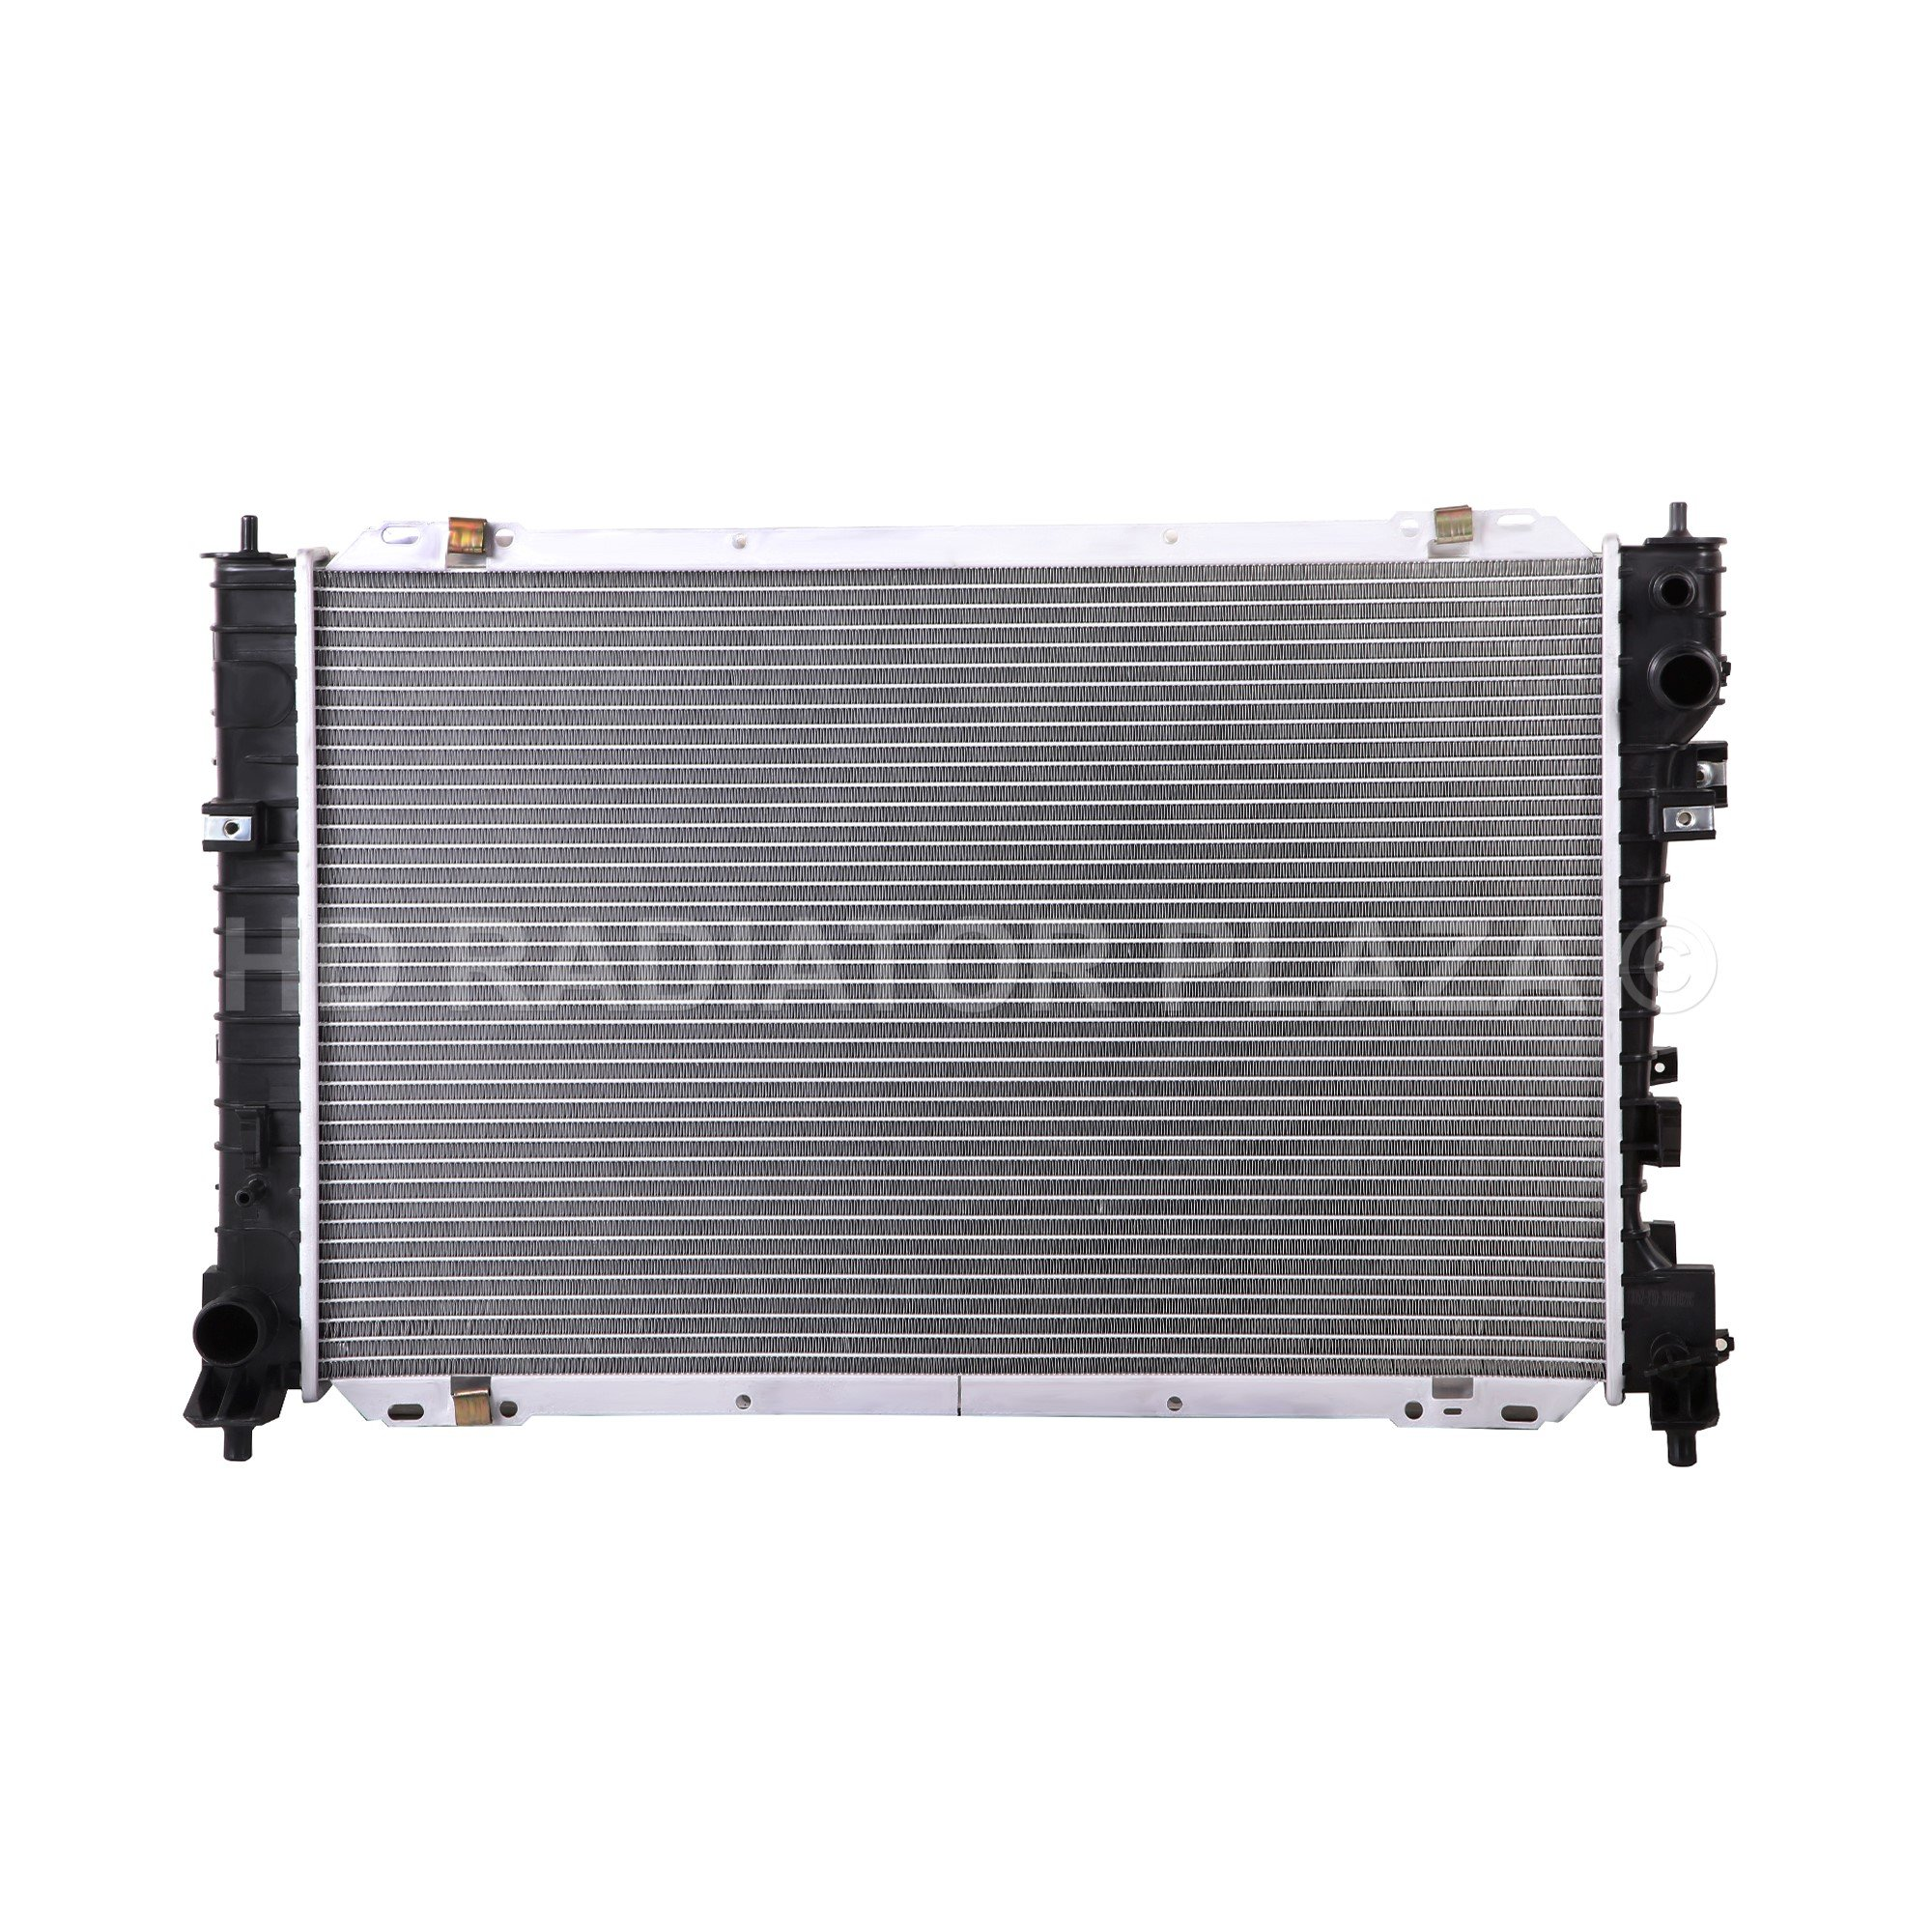 Radiator for 08-12 Ford Escape, Mazda Tribute, Mercury Mariner